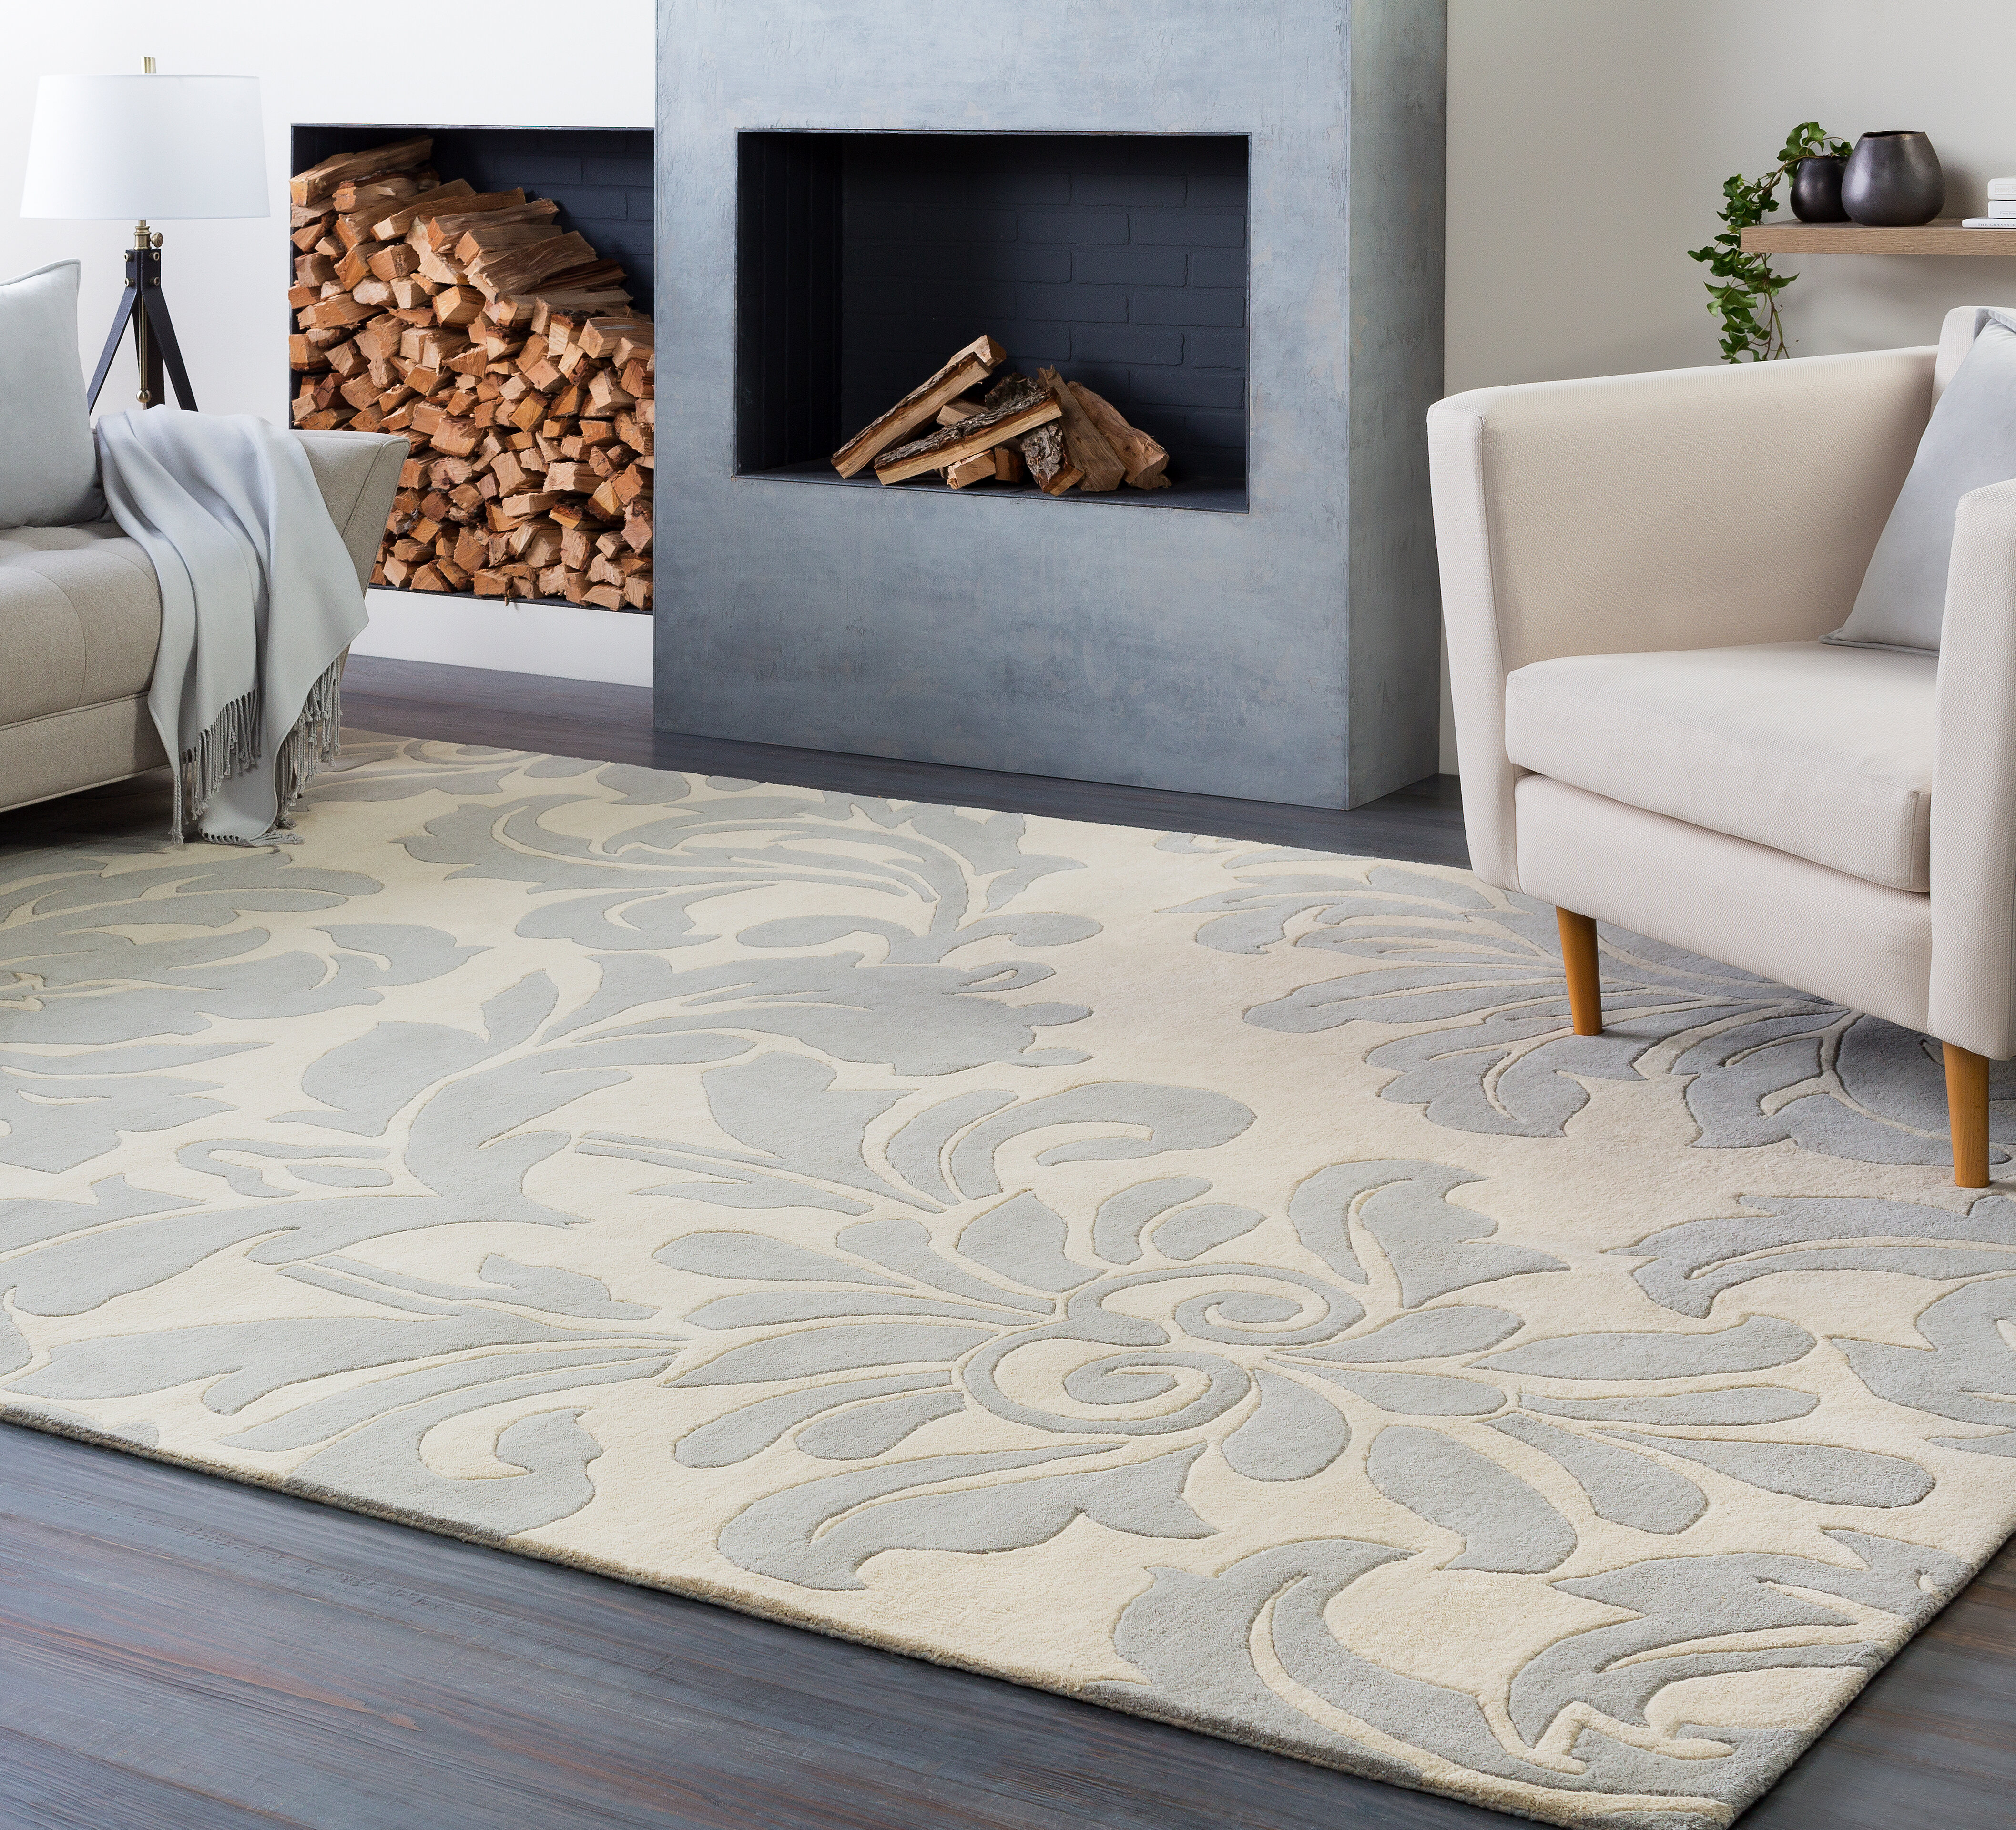 Knighton Floral Handmade Tufted Wool Cream Gray Area Rug Reviews Birch Lane